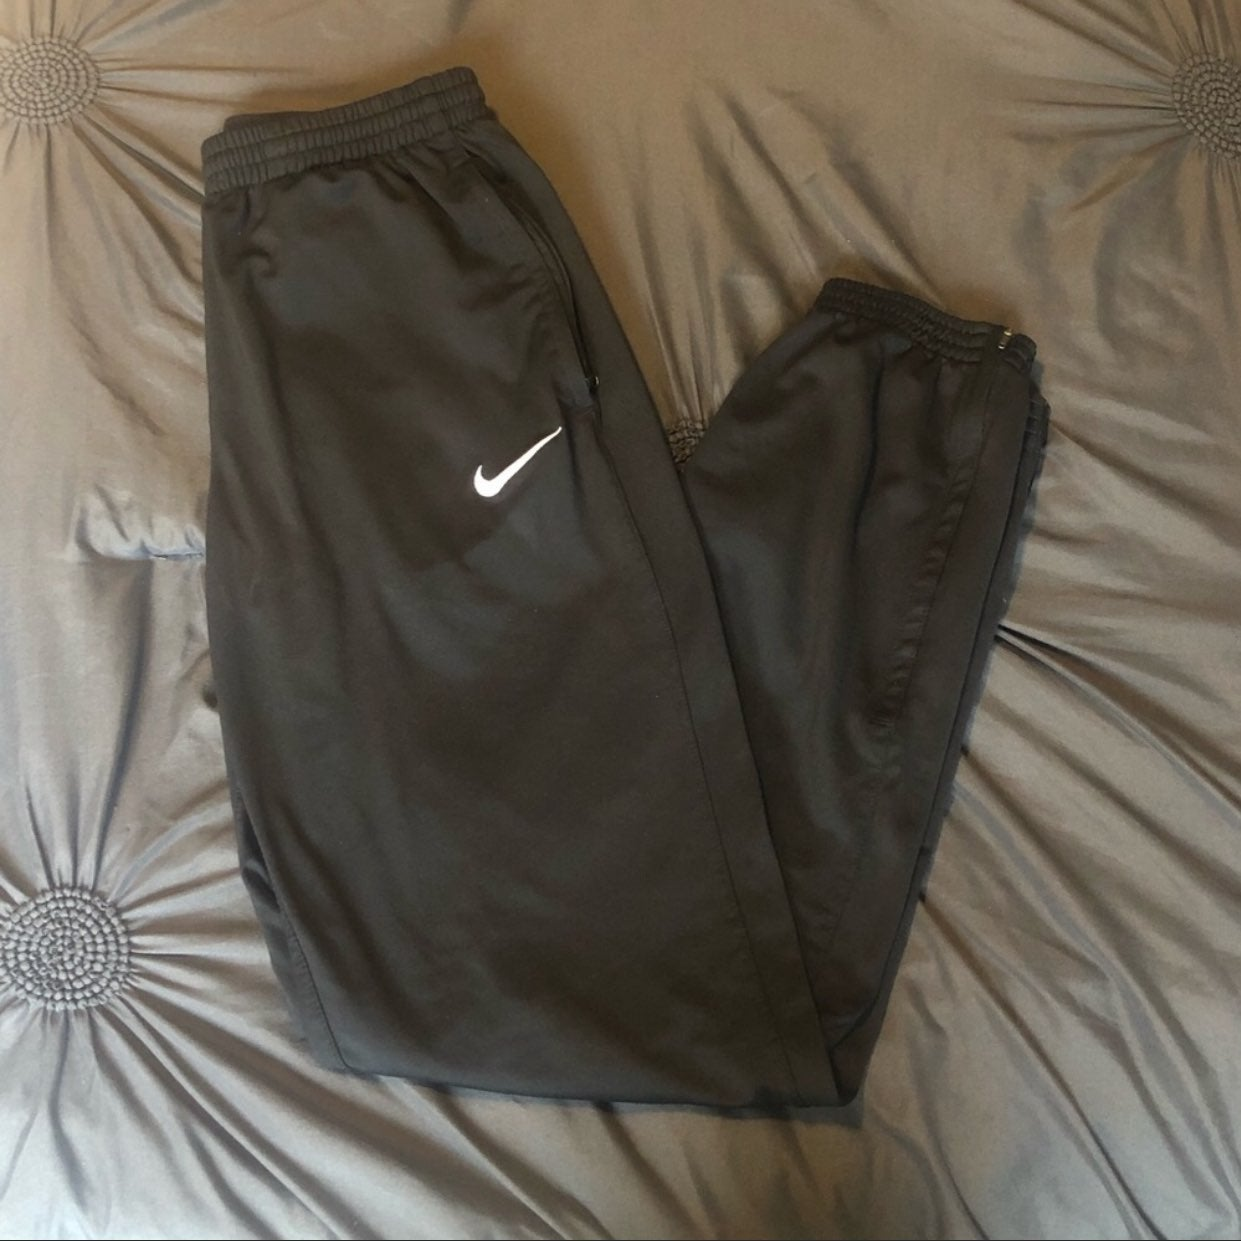 Nike sweat pants